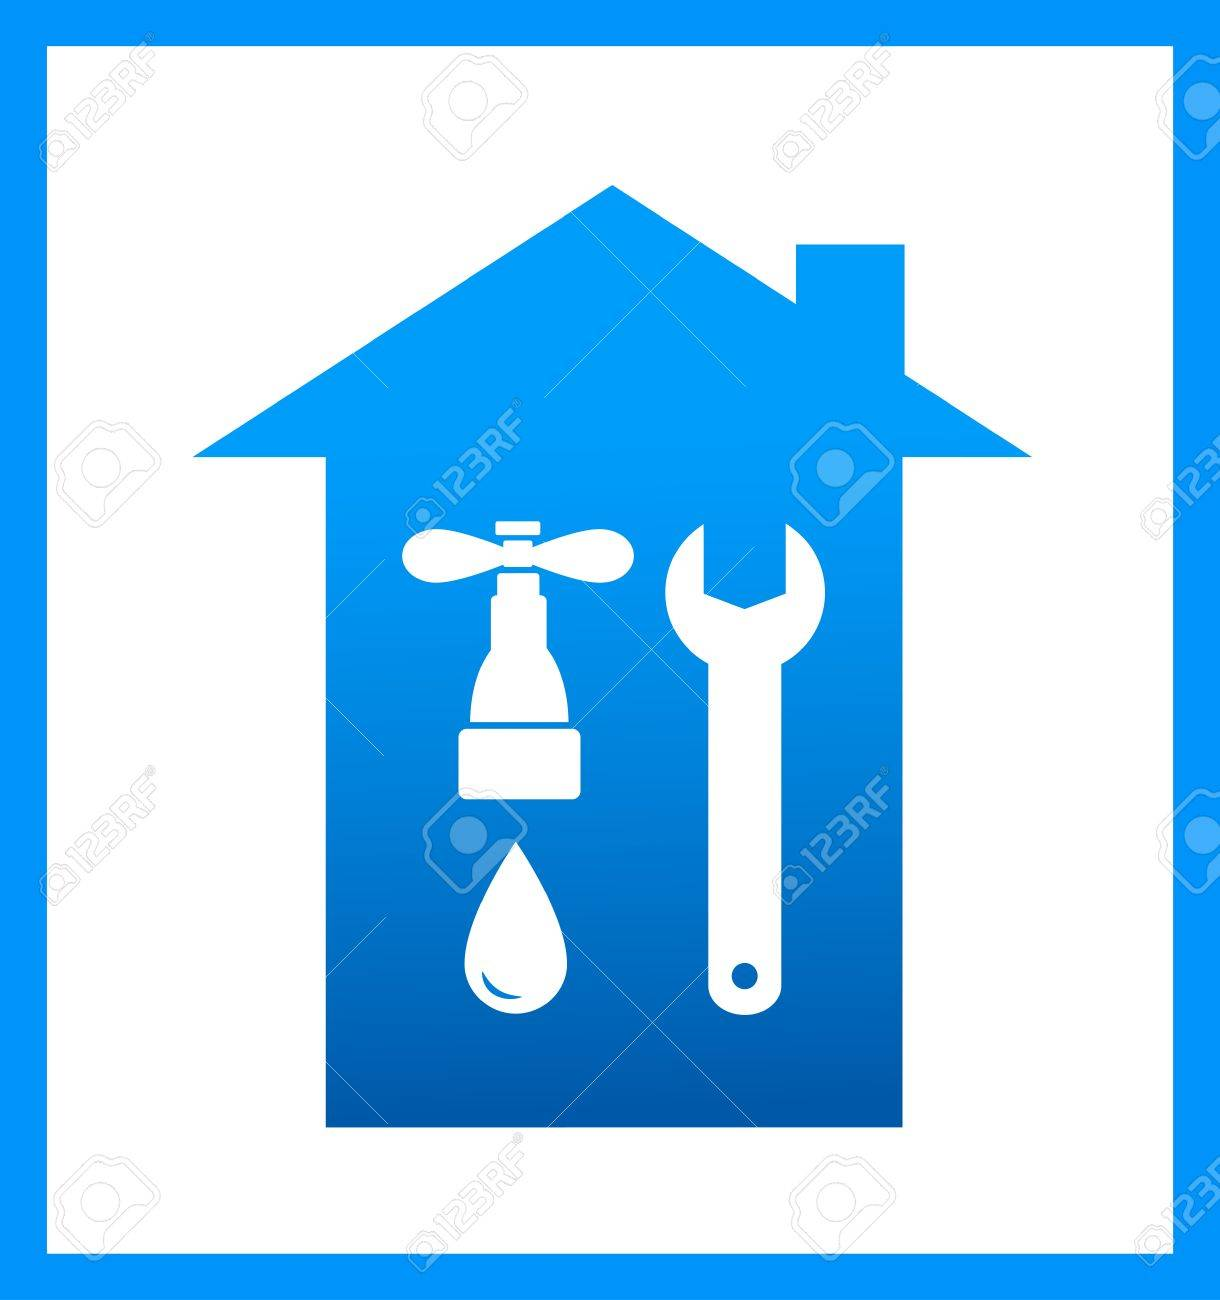 blue icon with plumbing faucet and wrench silhouette Stock Vector - 17884183